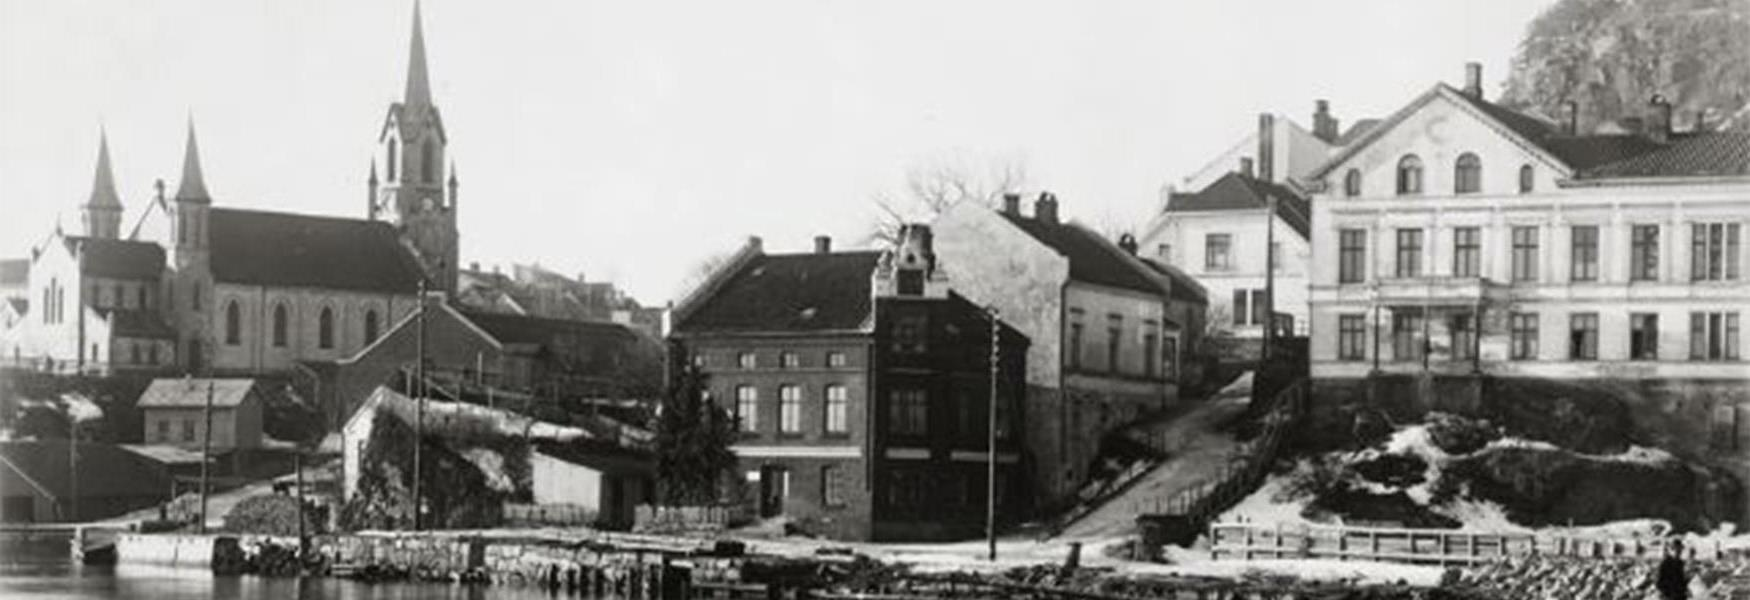 Kragerø in the old days